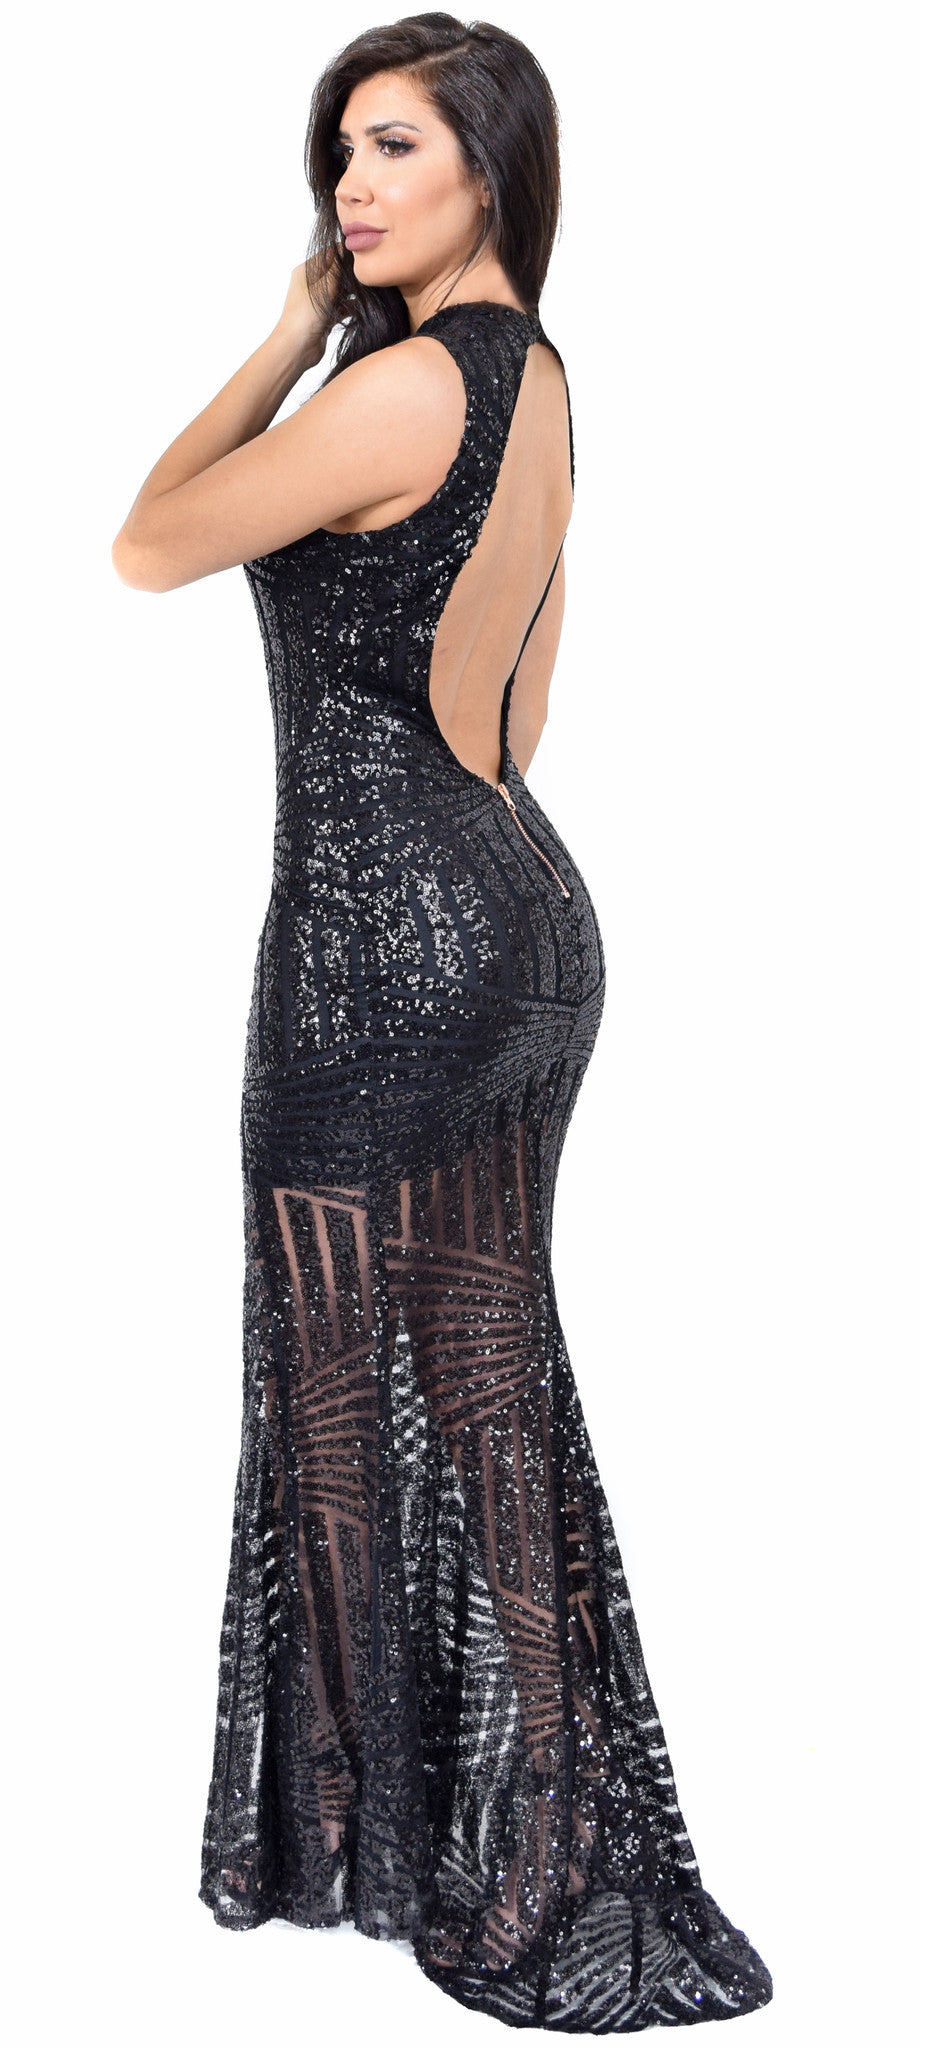 c17d1053f5 Yara Black Sequin Open Back Gown - Emprada